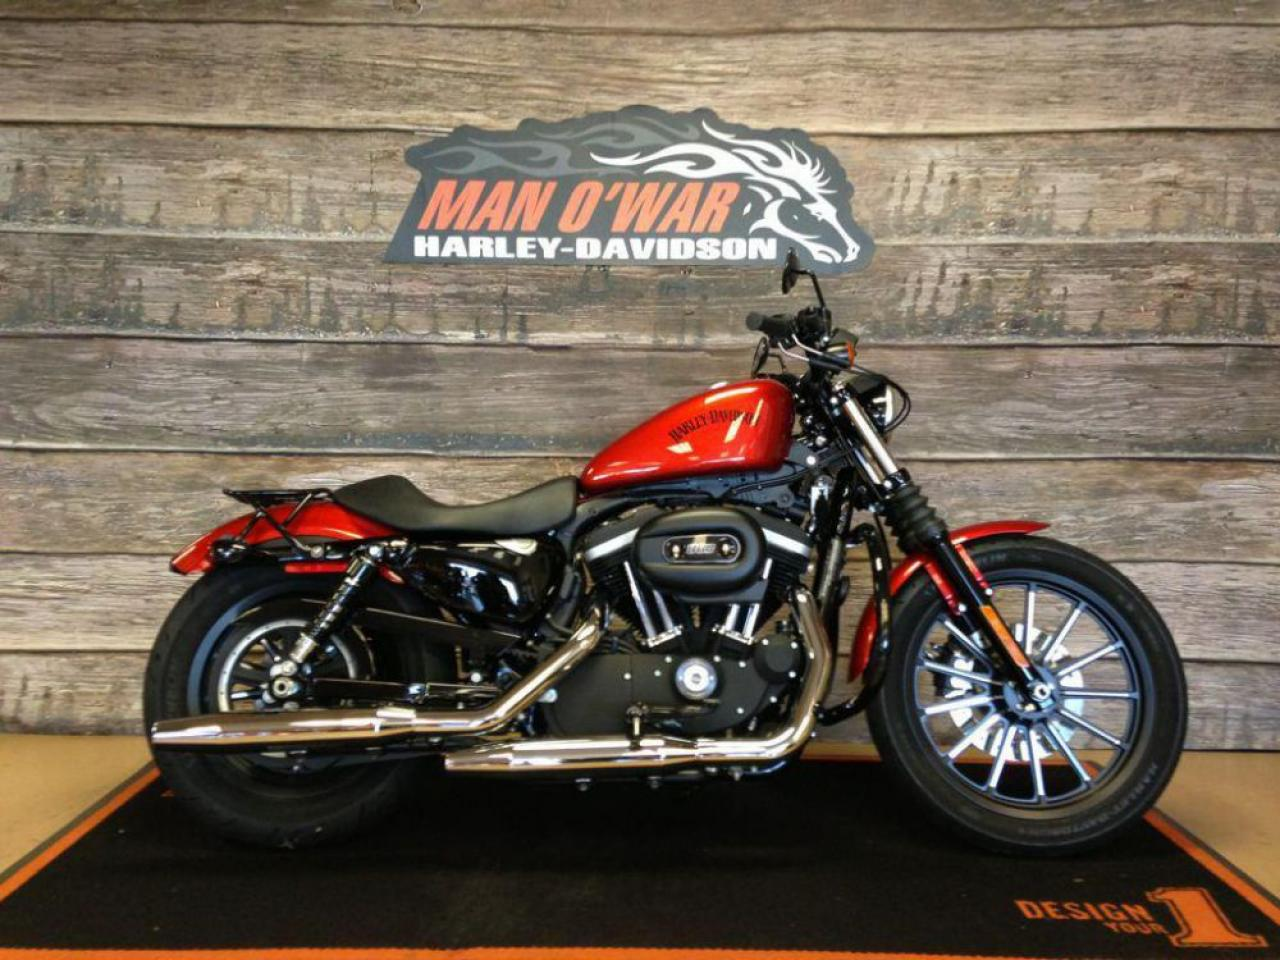 2013 Harley Davidson Iron 883 Start up and First Ride!